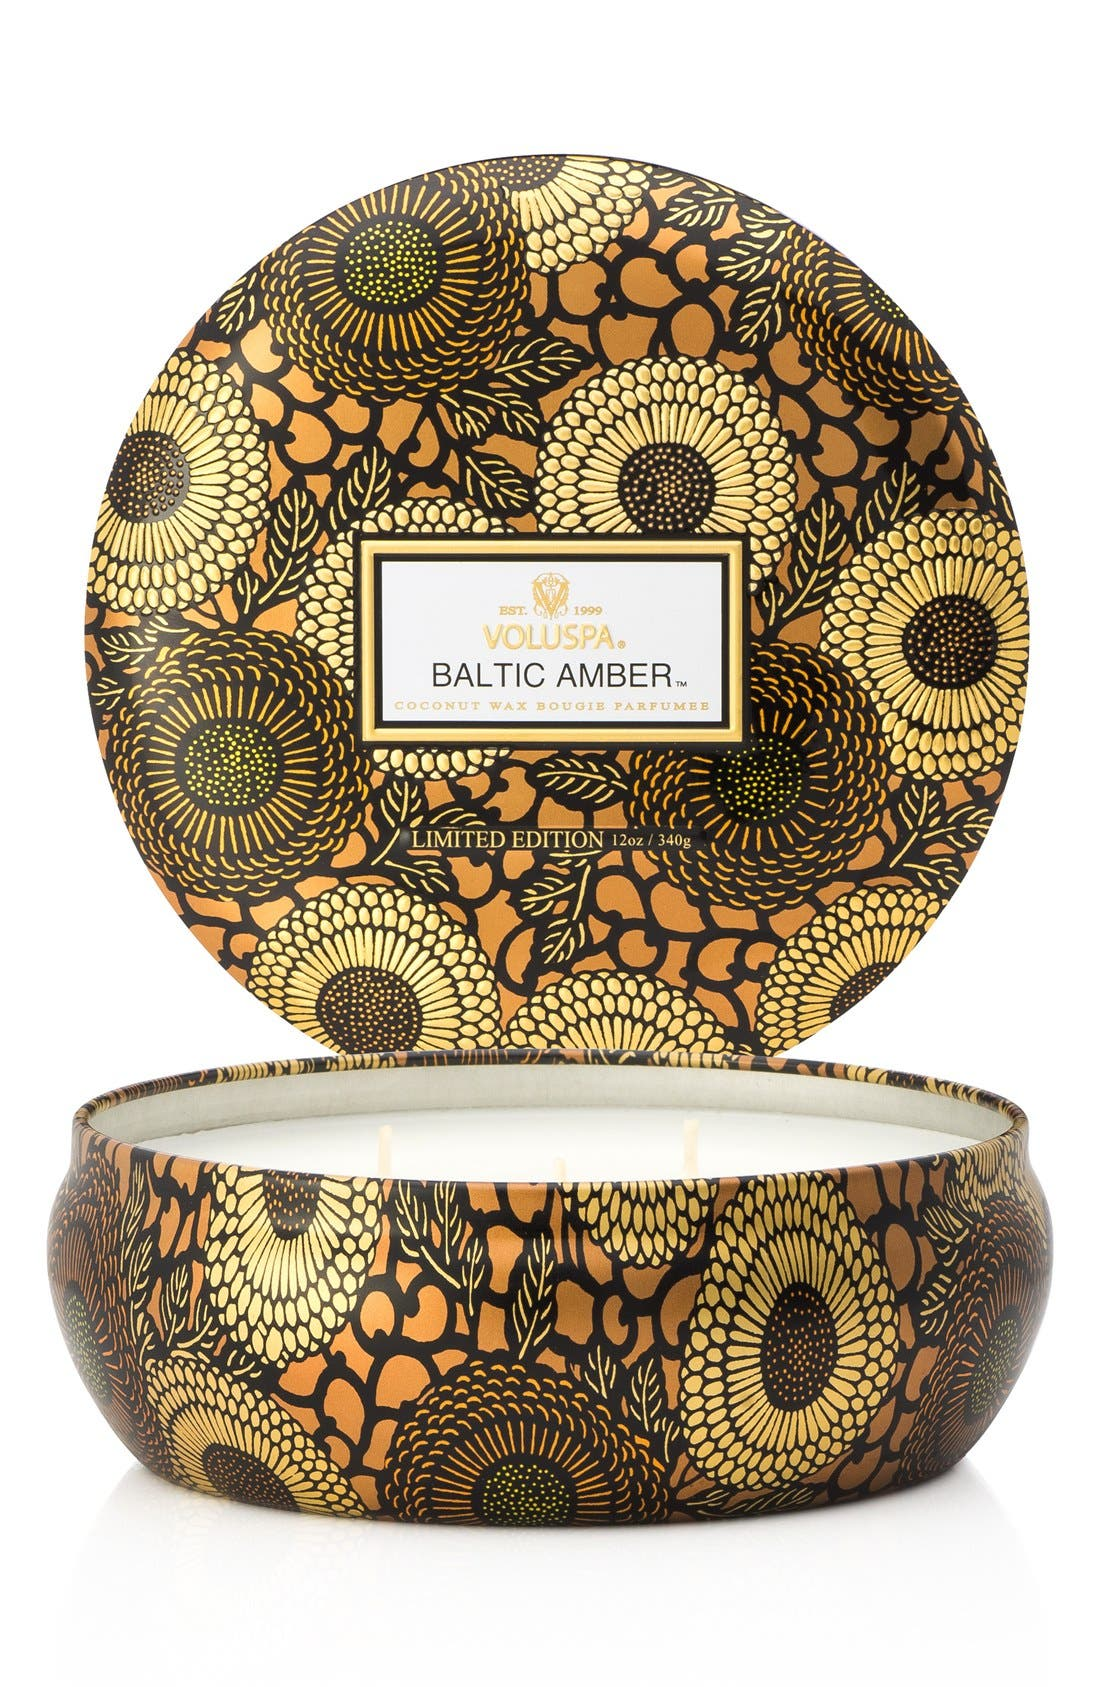 Alternate Image 1 Selected - Voluspa Japonica Baltic Amber Three-Wick Candle